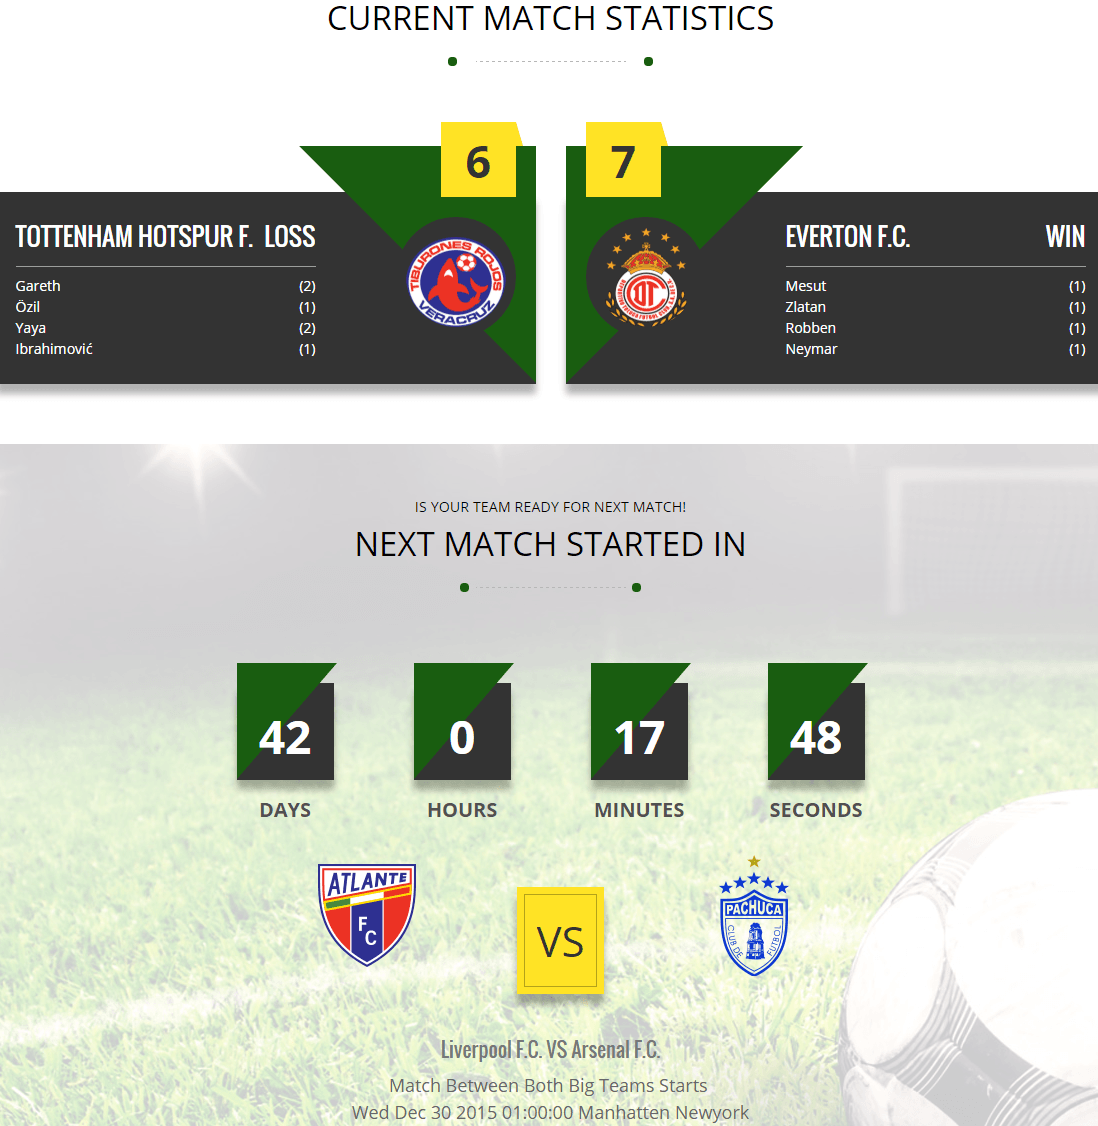 Kickoff- Front page featuring current match stats and upcoming match details